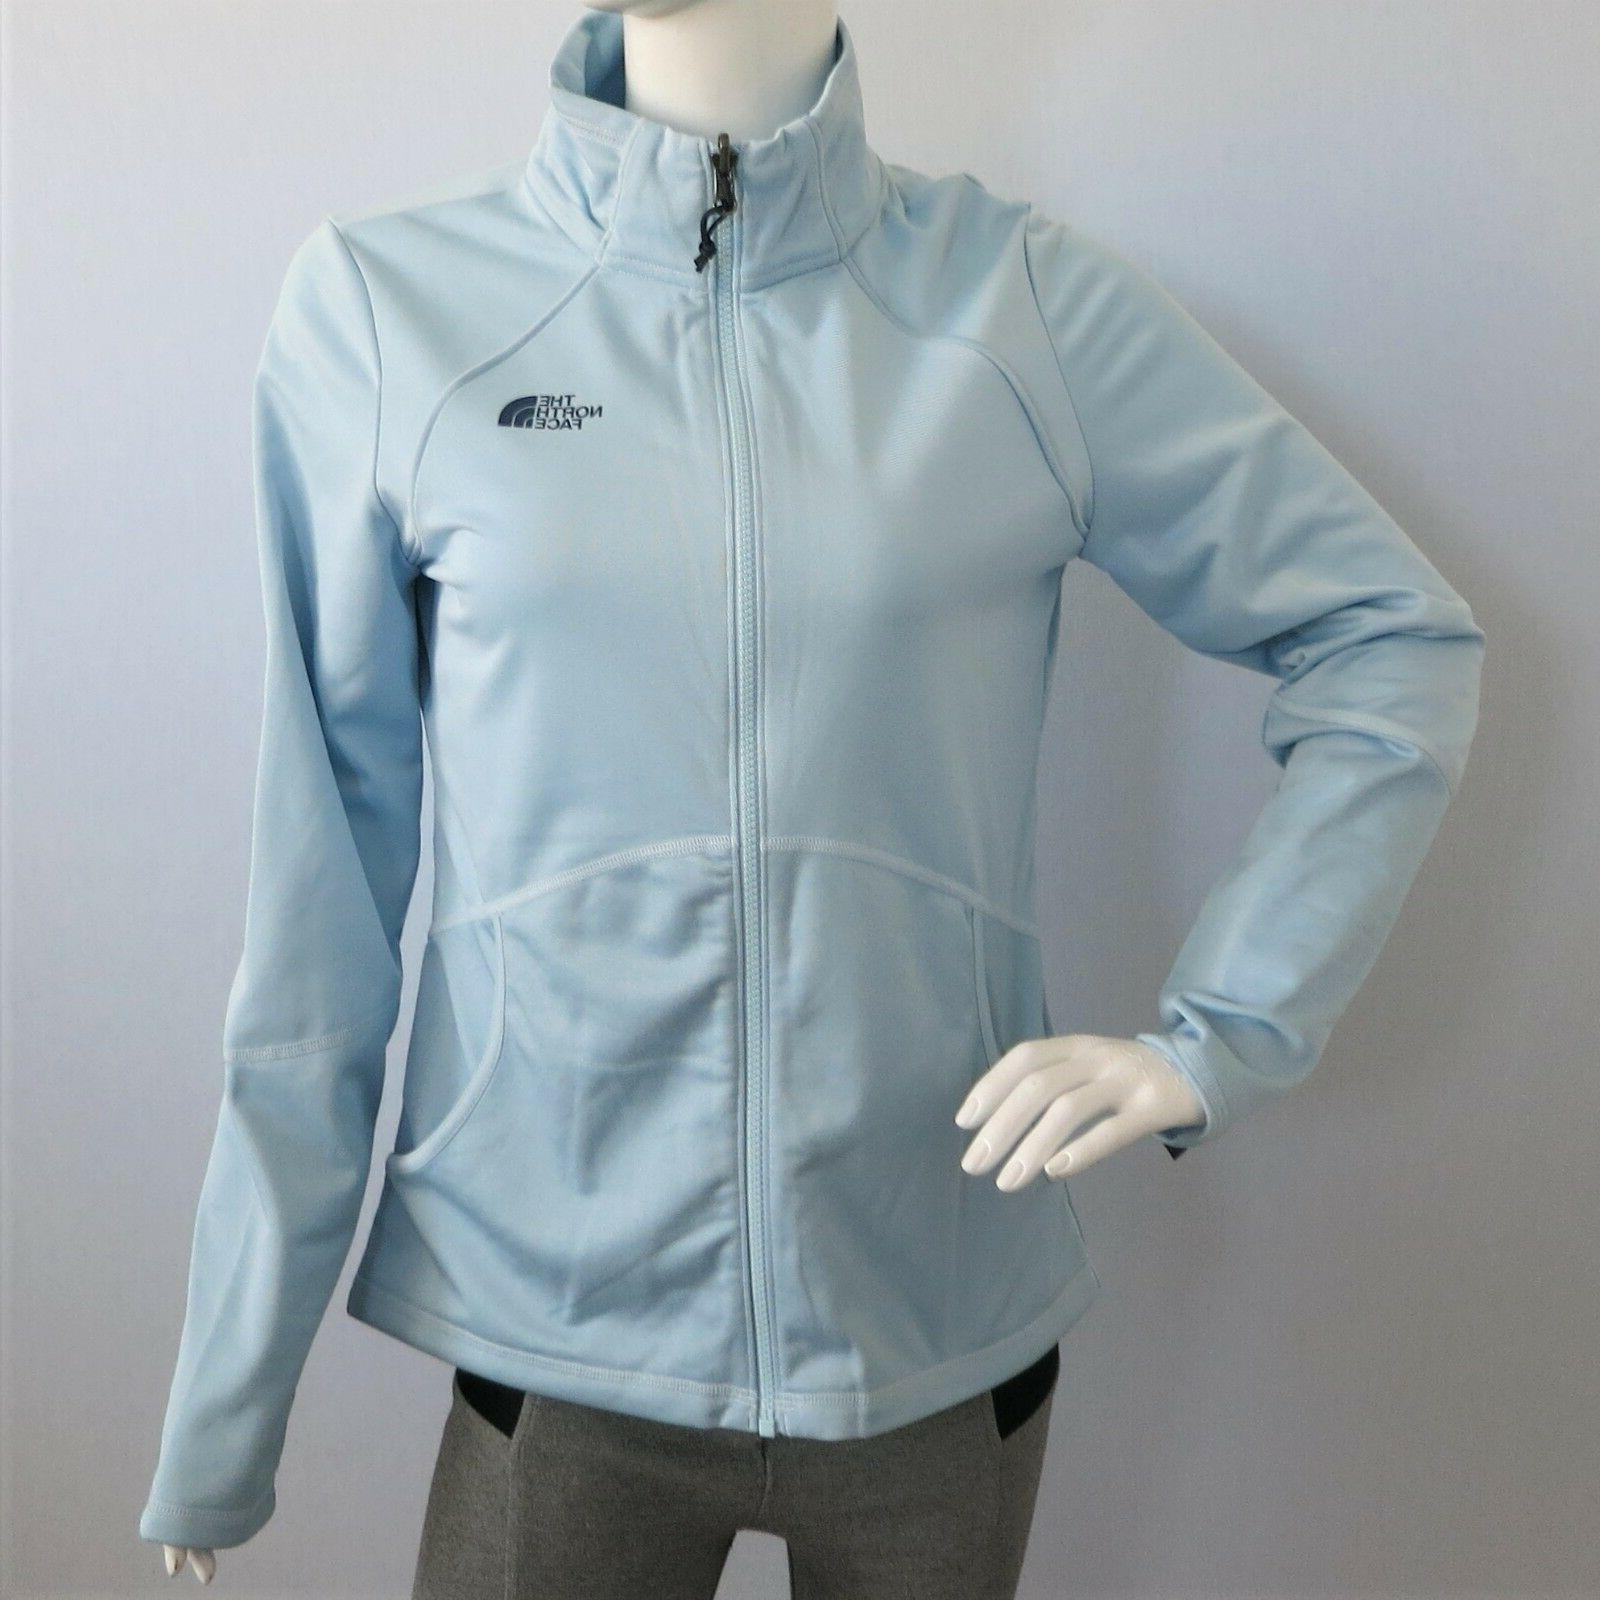 THE NORTH FACE Women's Cinder Triclimate 3-IN-1 Winter Jacket Blue